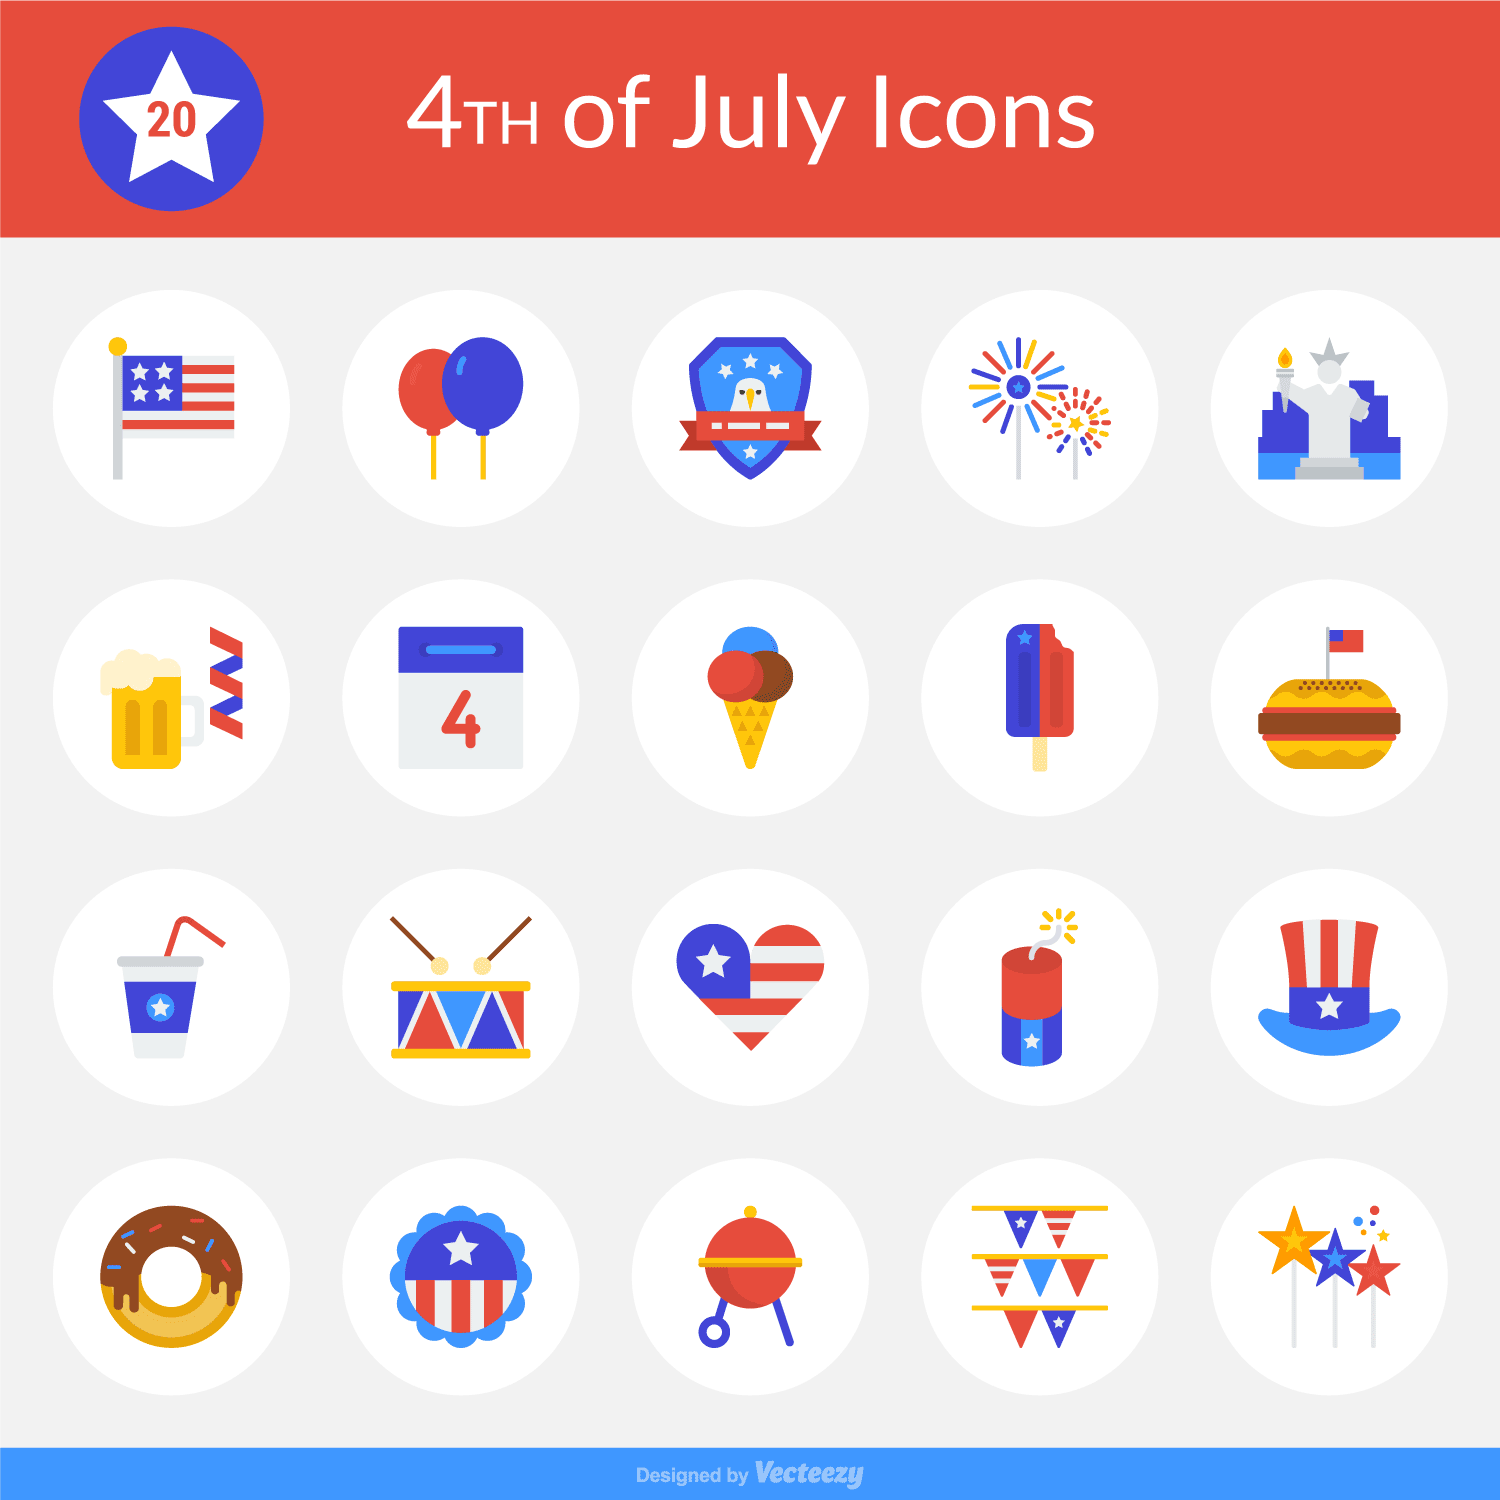 Free Icon Set Happy 4th Of July 20 Icons Png Eps Ai Svg